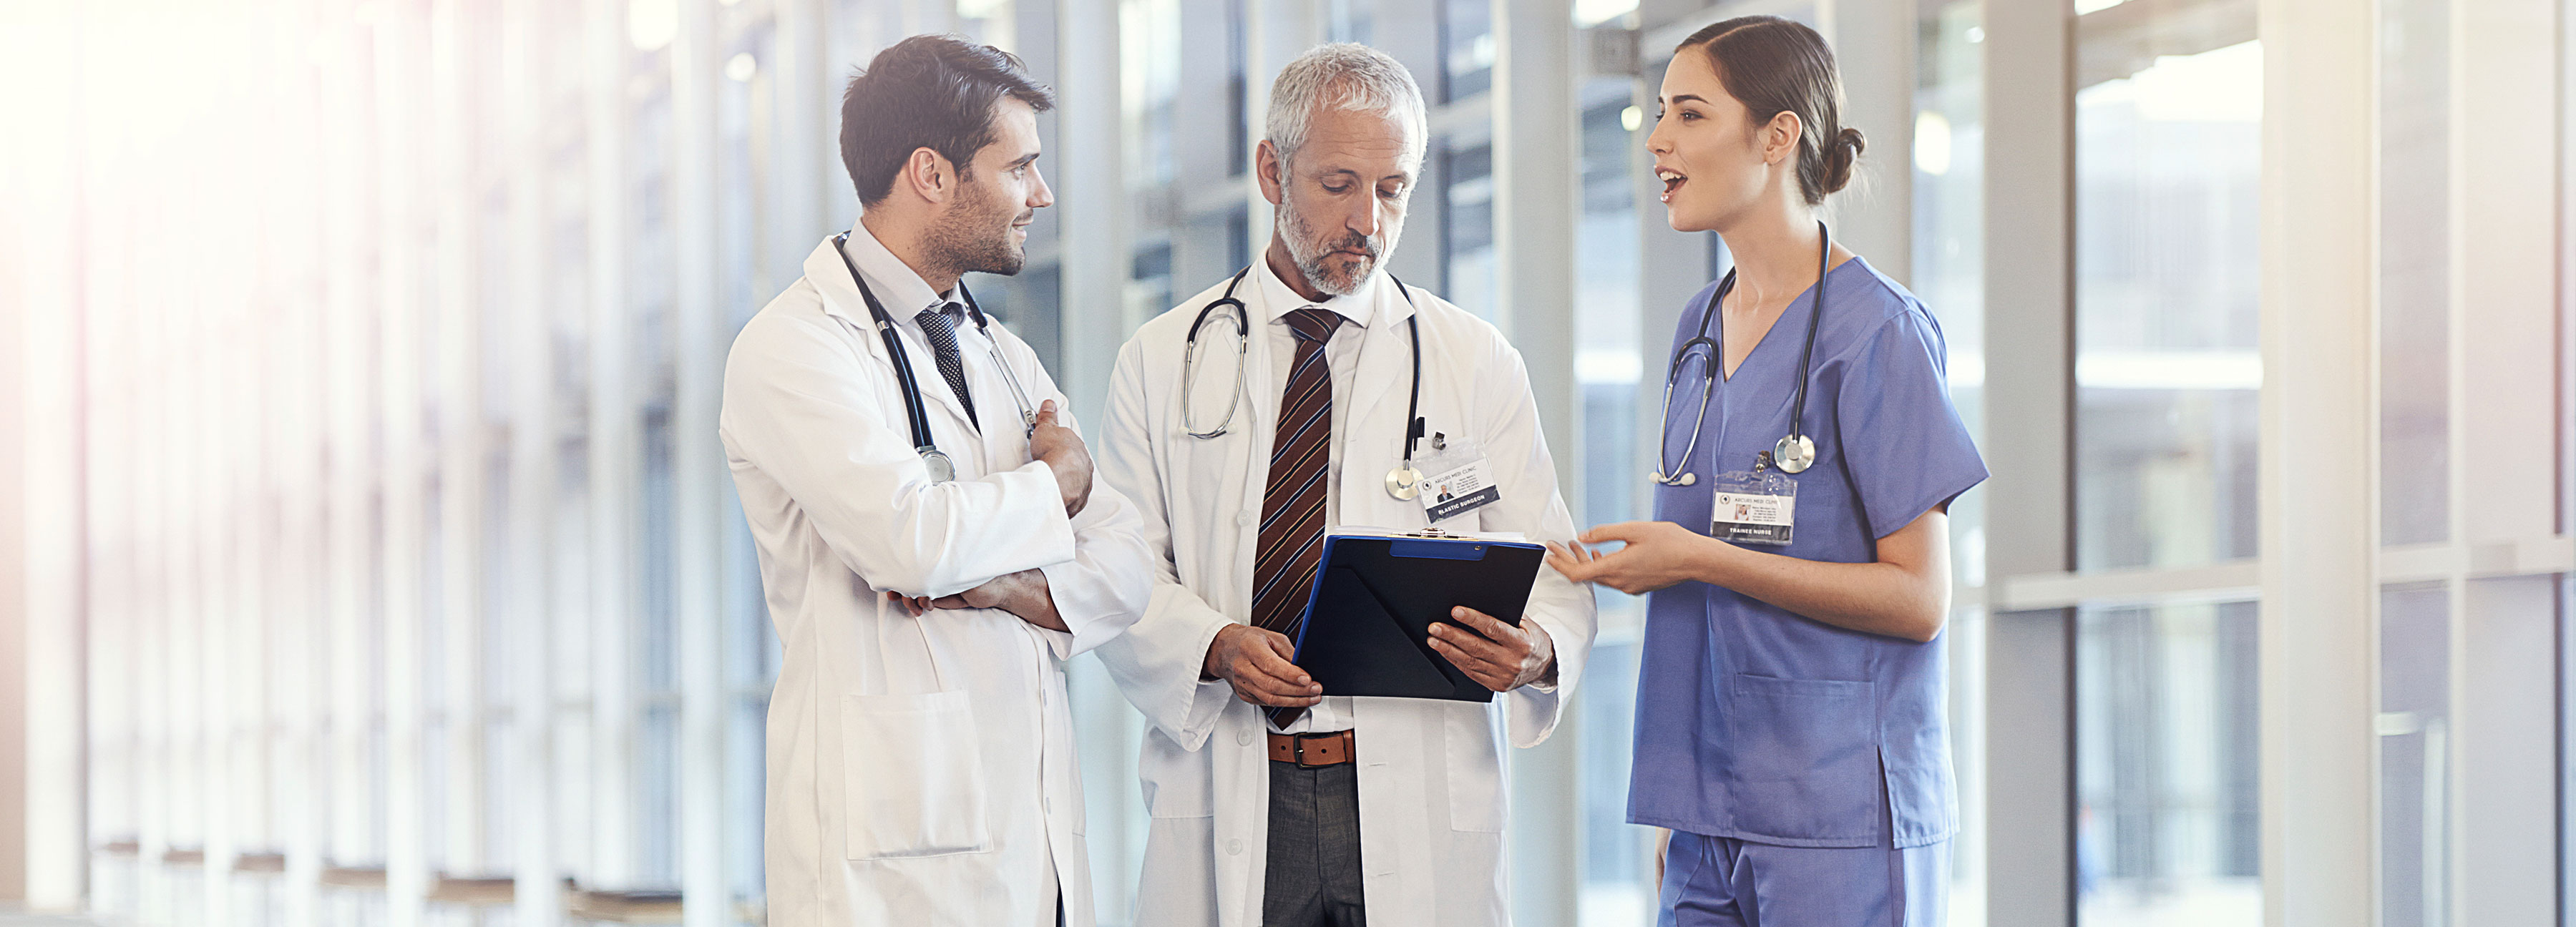 Three medical professionals reviewing charts